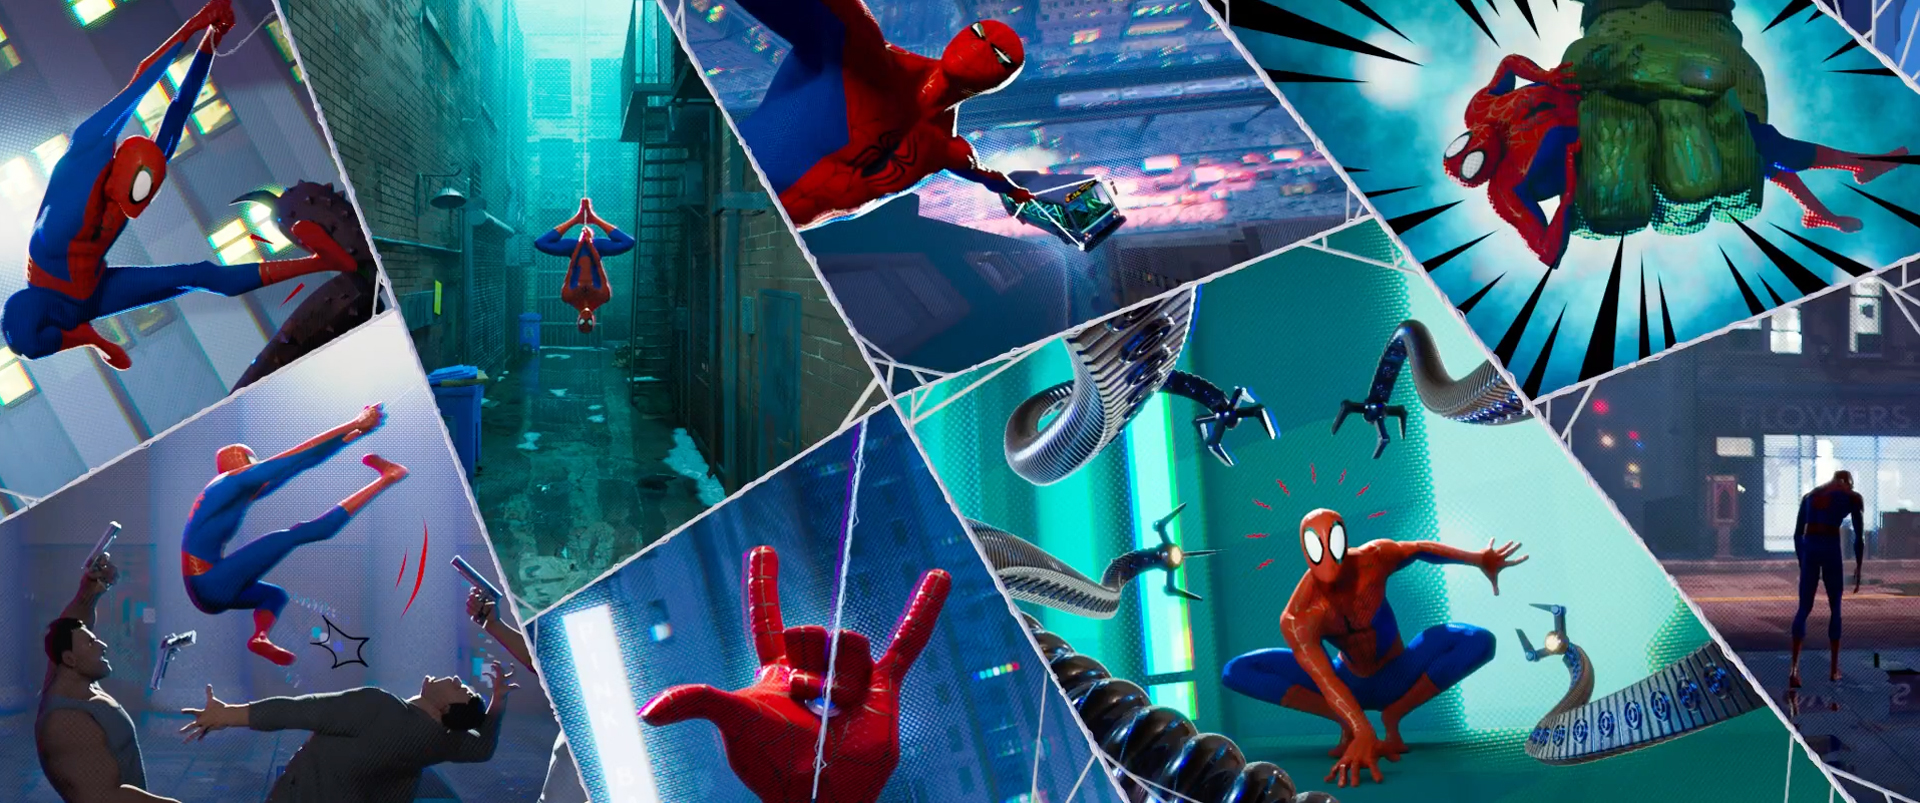 Resultado de imagen para spiderman into the spider verse